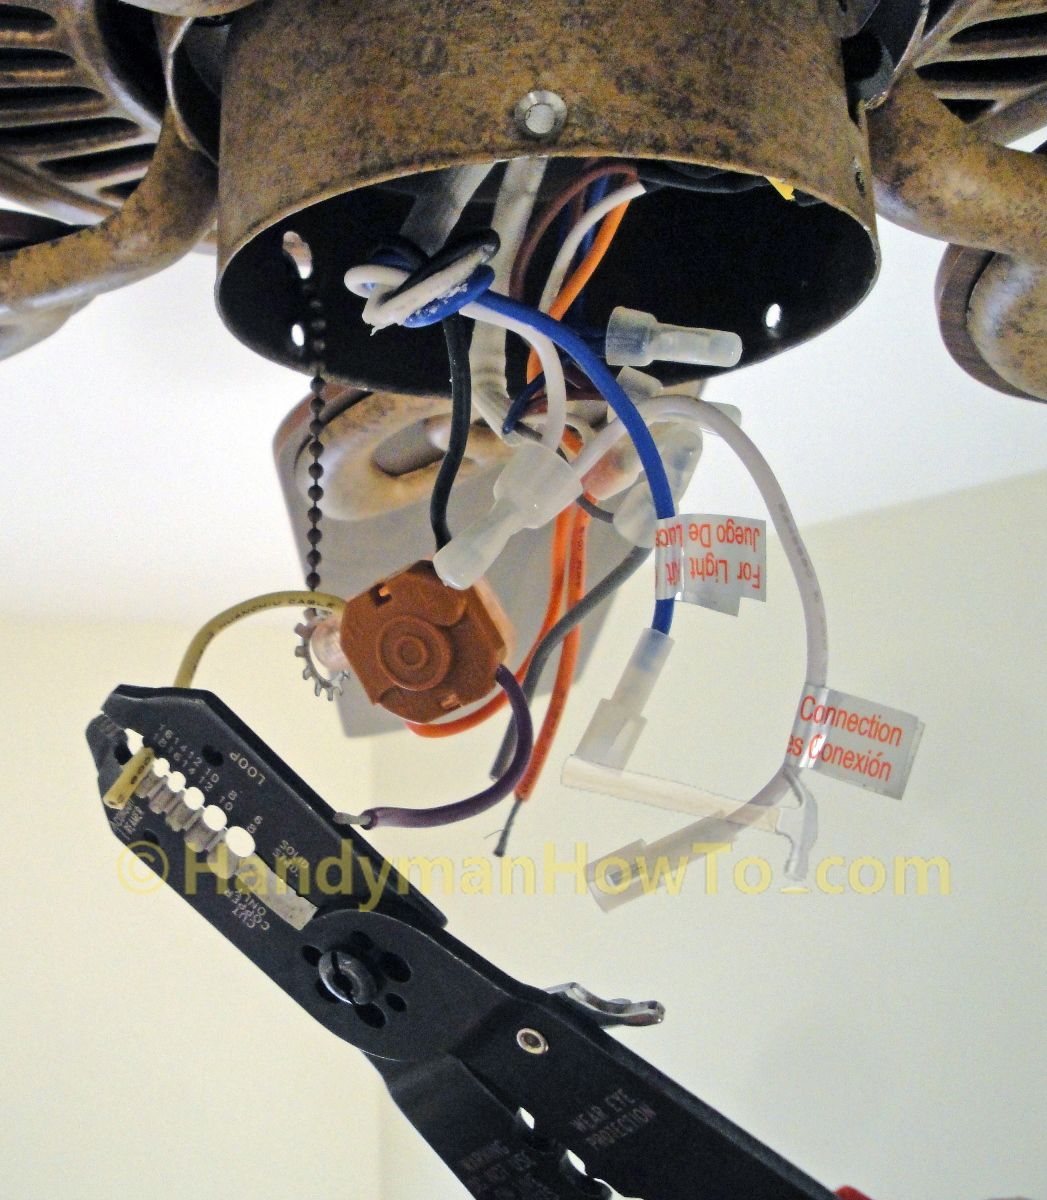 Ceiling Fan Pull Chain Broke New Ceiling Fan Motor Capacitor Replacement Strip The Leads On The Fan Design Inspiration